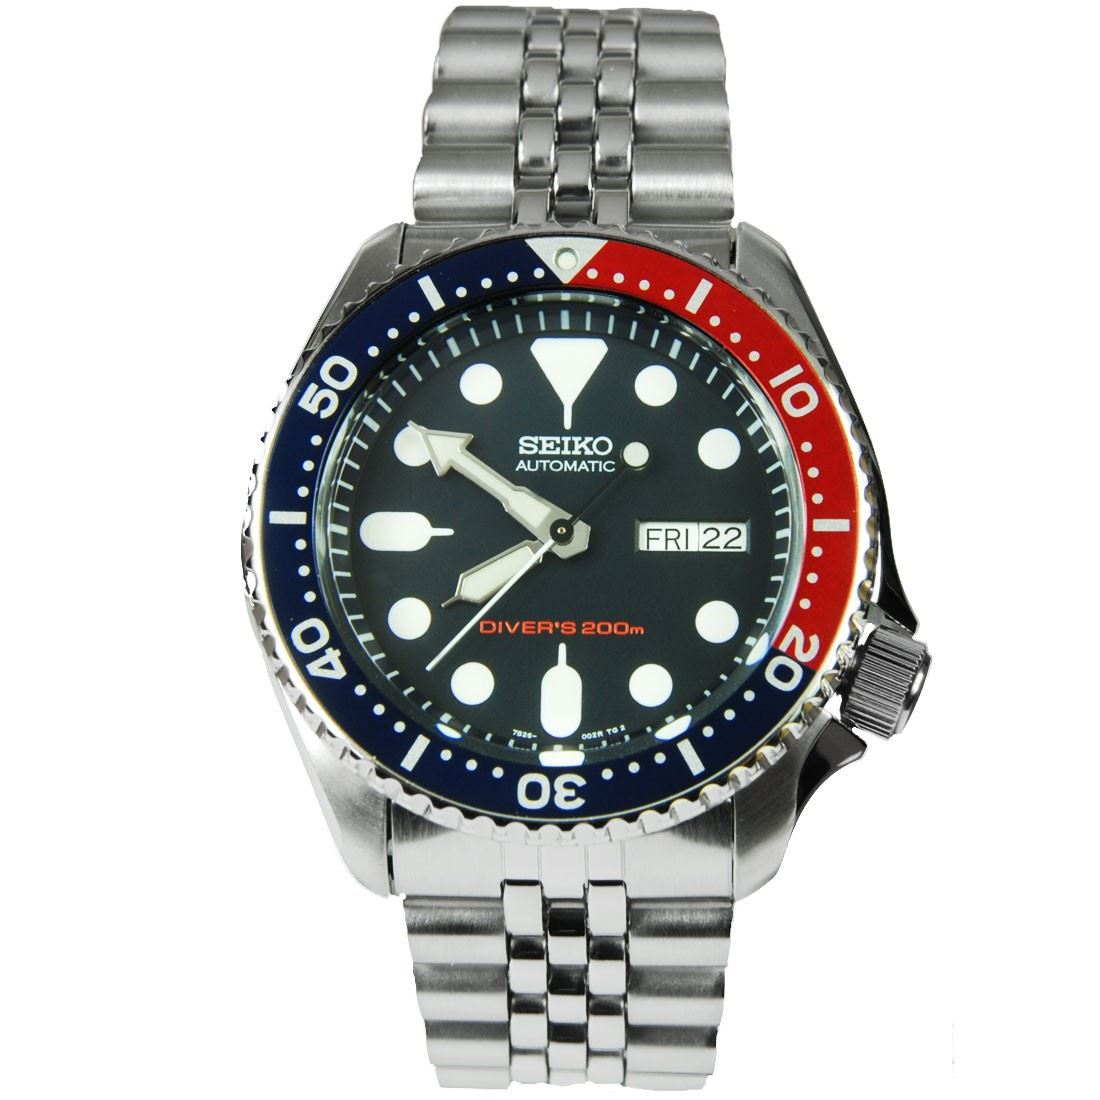 seiko mens seiko diver sport watch skx007k2 skx007j1 skx009k1 skx009j1 ebay On seiko diver watch